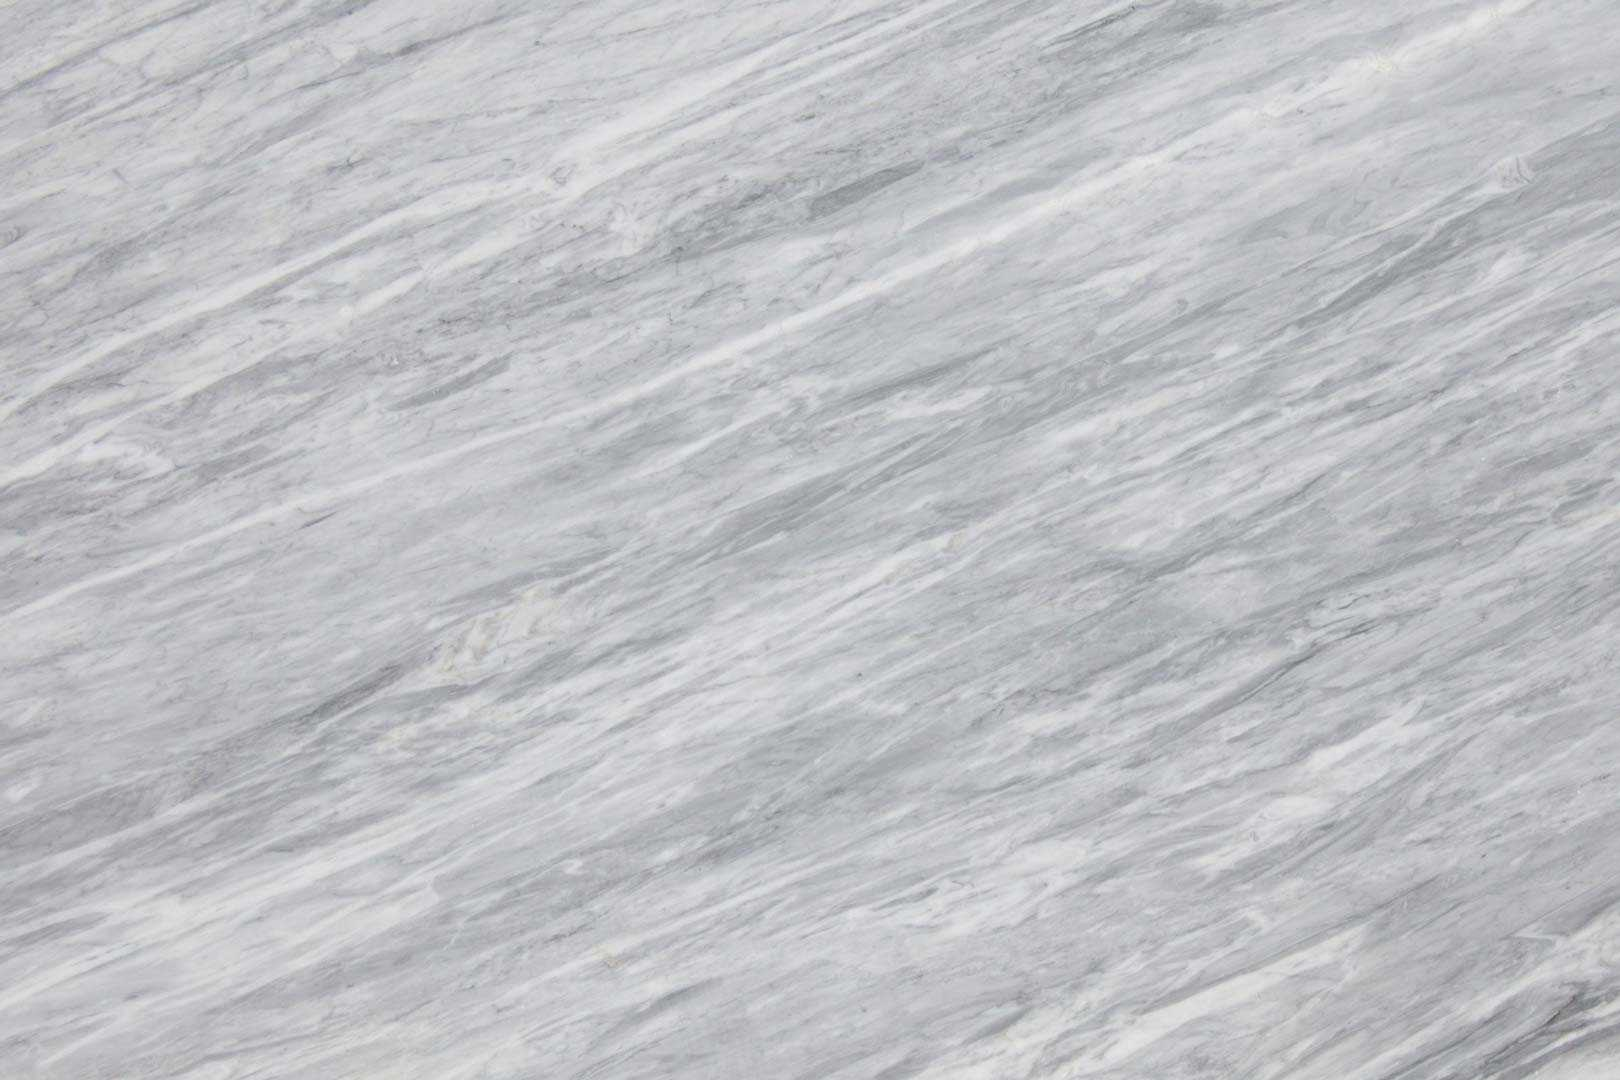 """Bardiglio Ordinario - <div class=""""summary entry-summary""""> <div class=""""woocommerce-product-details__short-description"""">  Sourced from our craftsmen quarries in Tuscany. Bardiglio Ordinario is punctuated with flowing veins and swaths of colours in an array of grey tones. <ul>  <li>Compressive Strength: 1385 kg/cm2</li>  <li>Tensile Strength: 225 kg/cm2</li>  <li>Water Absorption: 0.12%</li>  <li>Bulk Density: 2800 kg/m3</li> </ul> </div> </div> 